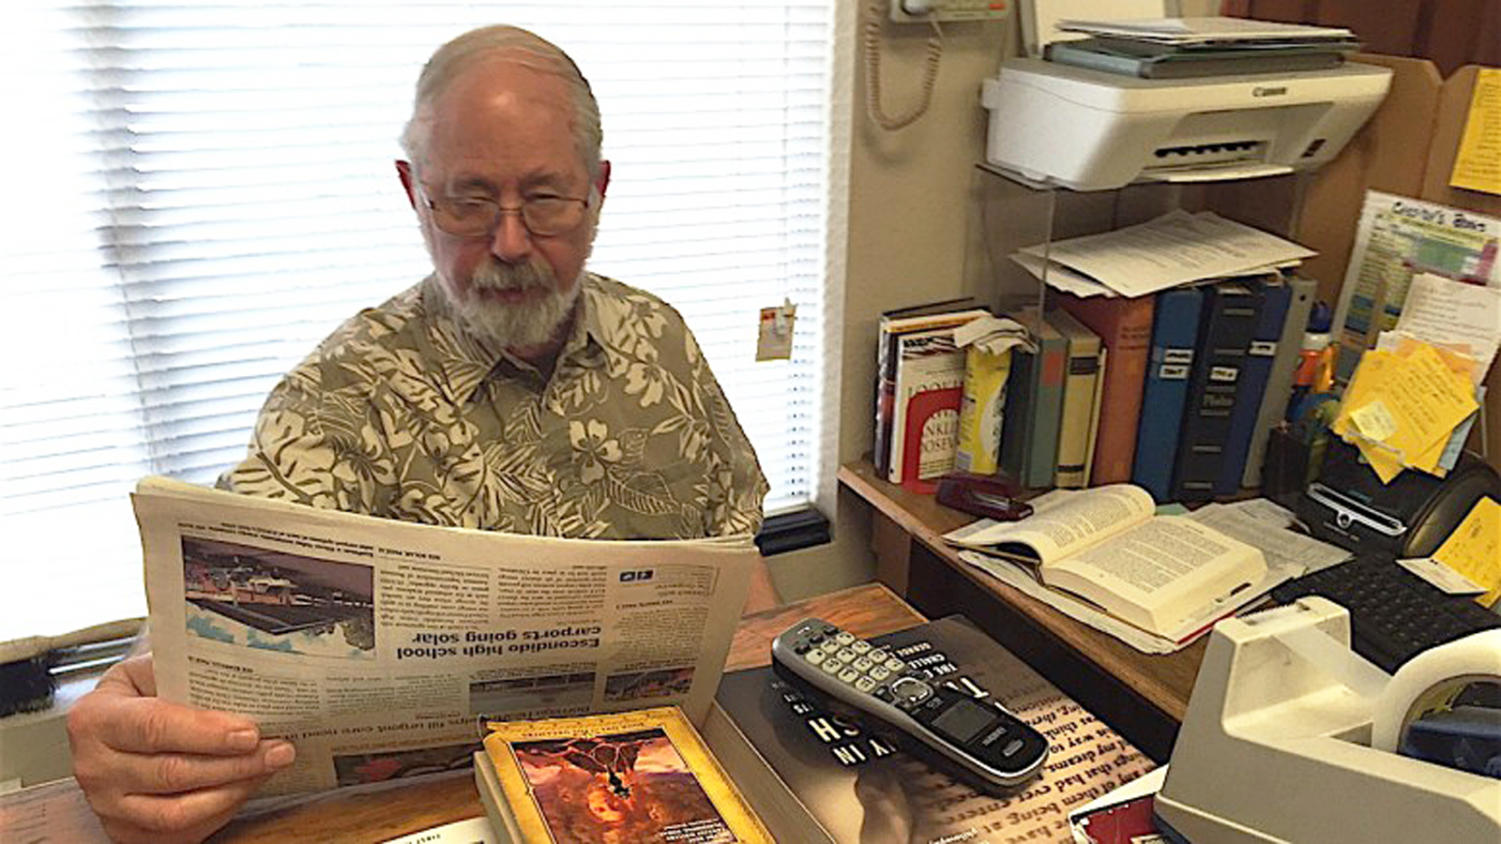 Cassidy's Books owner Tom McDevitt works at his desk in the shop, located in San Marcos. (Escondido Grapevine photo)